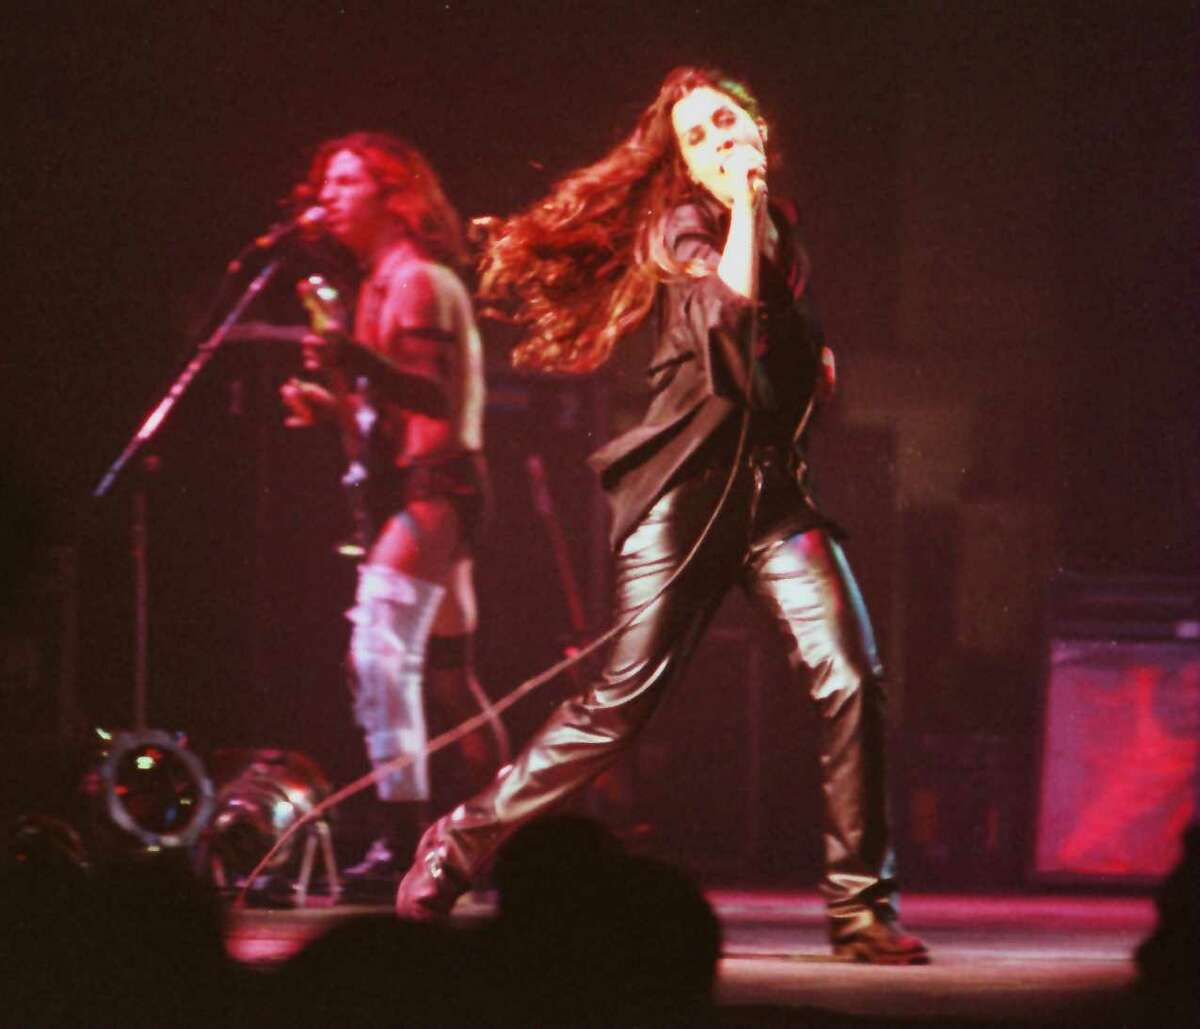 """Alanis Morissette performs at the RPI Fieldhouse in Troy in 1996, the year her breakthrough album """"Jagged Little Pill"""" came out. The album's 25th-anniversary tour bring the singer to the Saratoga Performing Arts Center on Sept. 5, 2021. (Times Union archive)"""